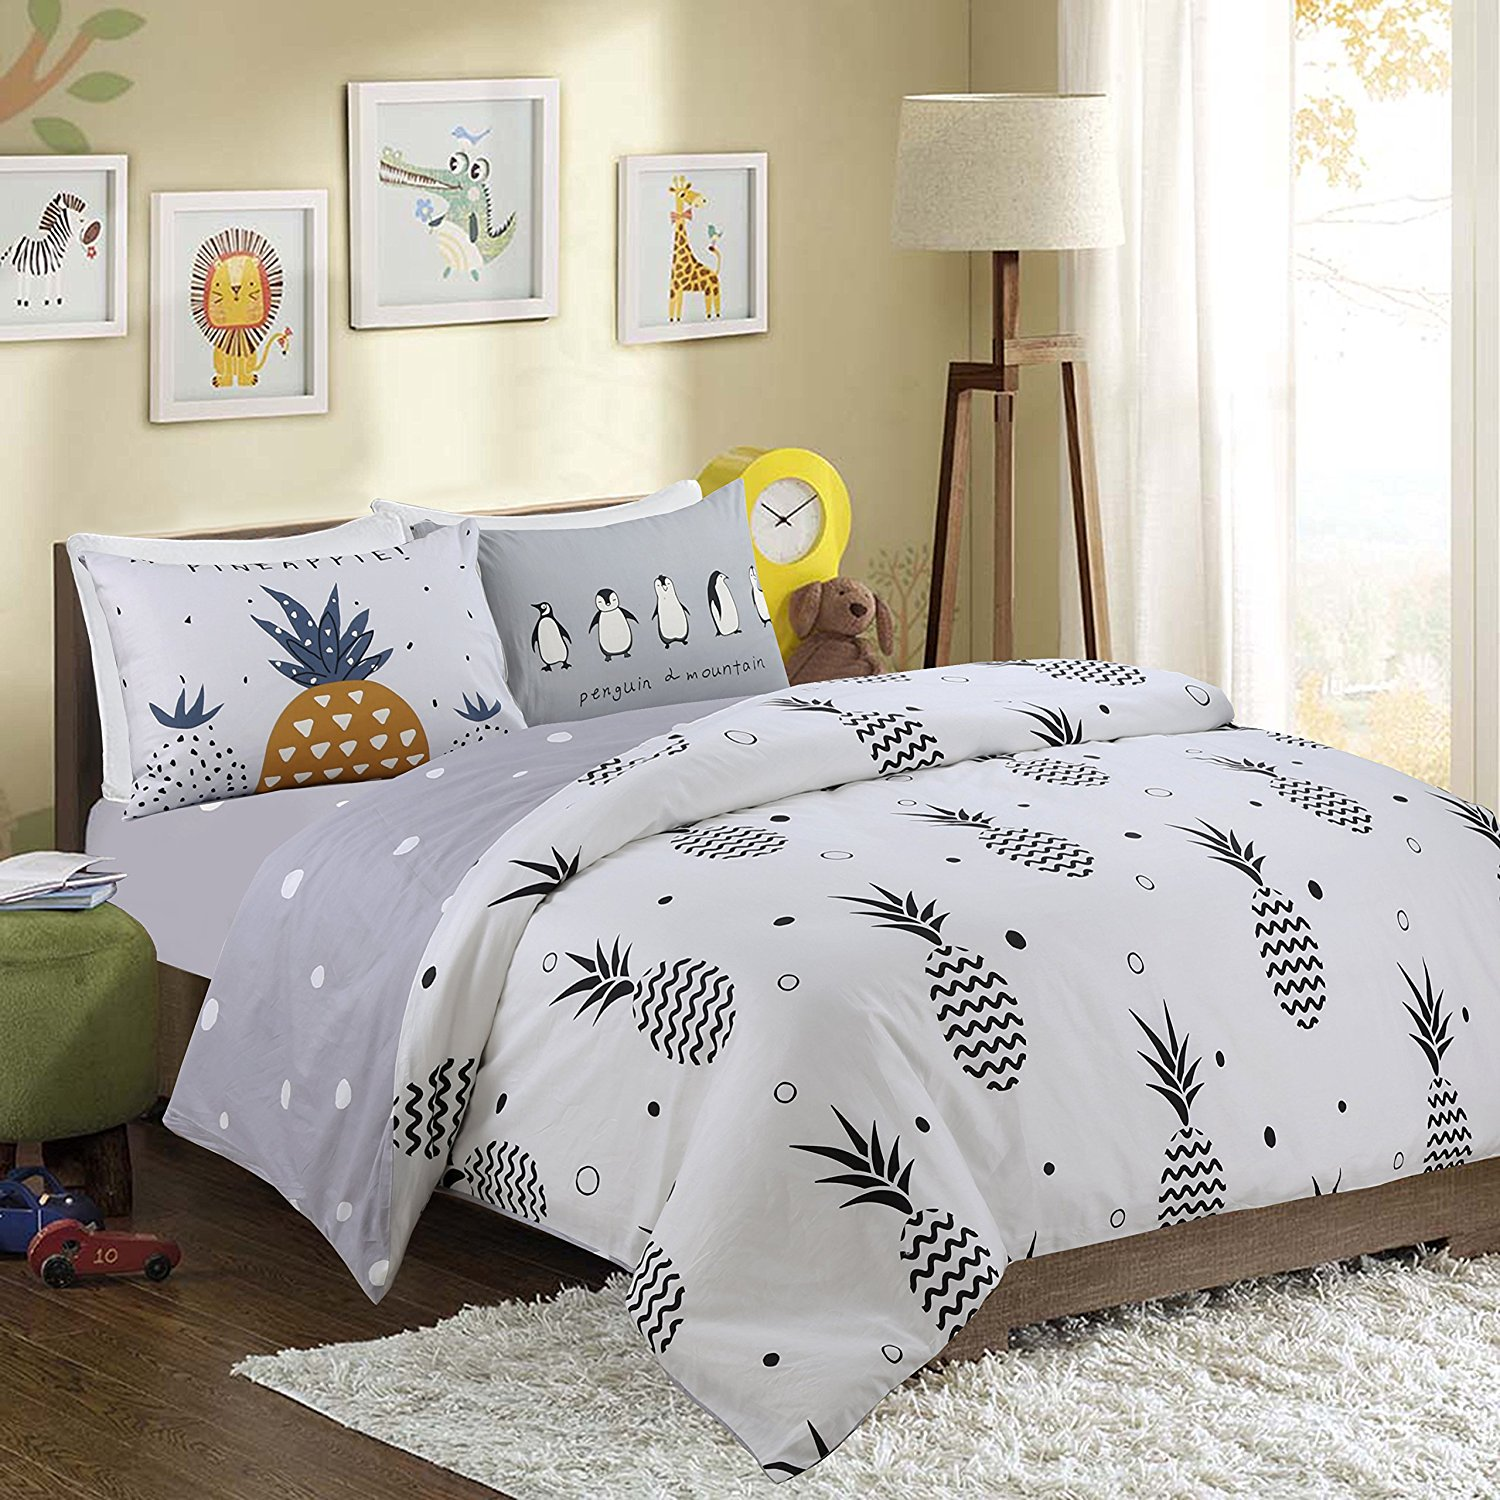 213f3f4f32 Get Quotations · HNNSI Girls Boys Pineapple Pattern Kids Bedding Duvet  Cover Sets QUEEN Size 4 Pieces, 100